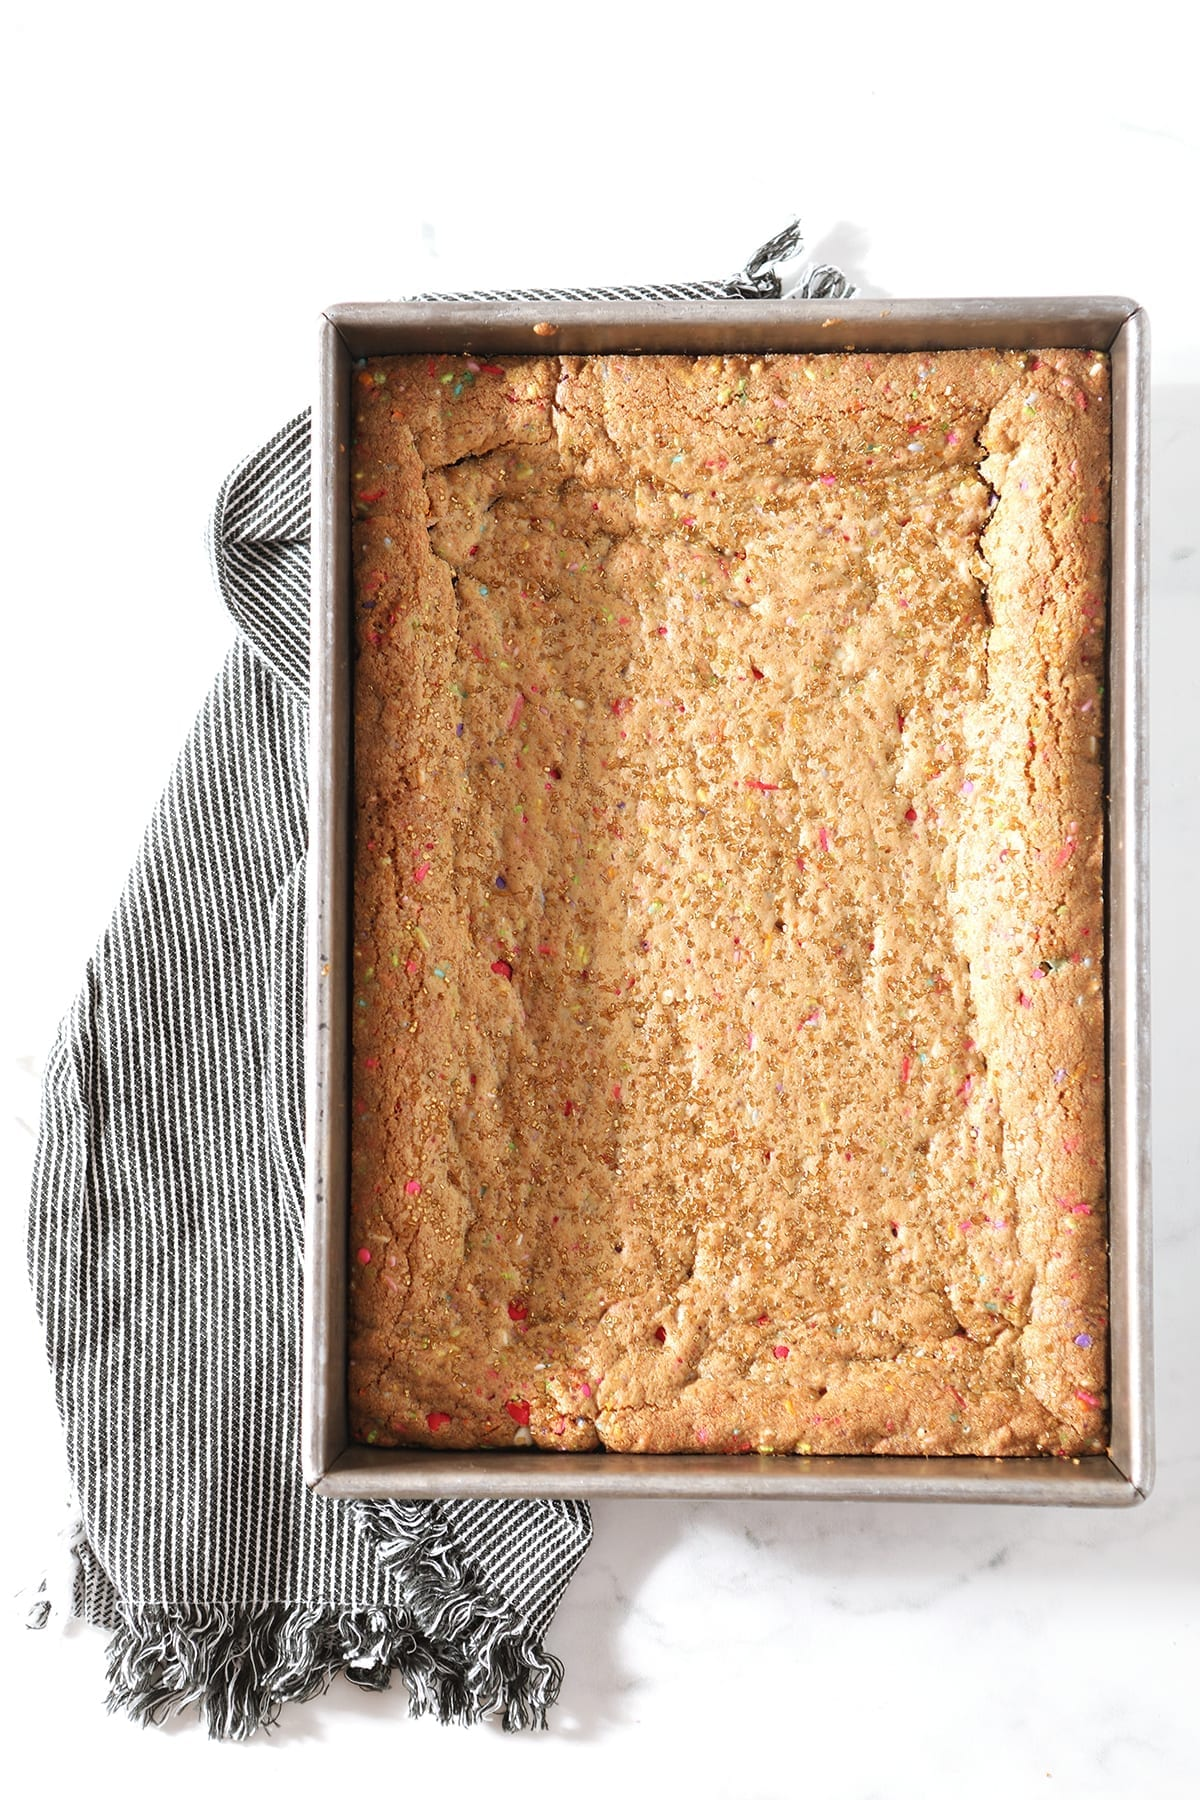 Cookie bars in a baking pan, from above